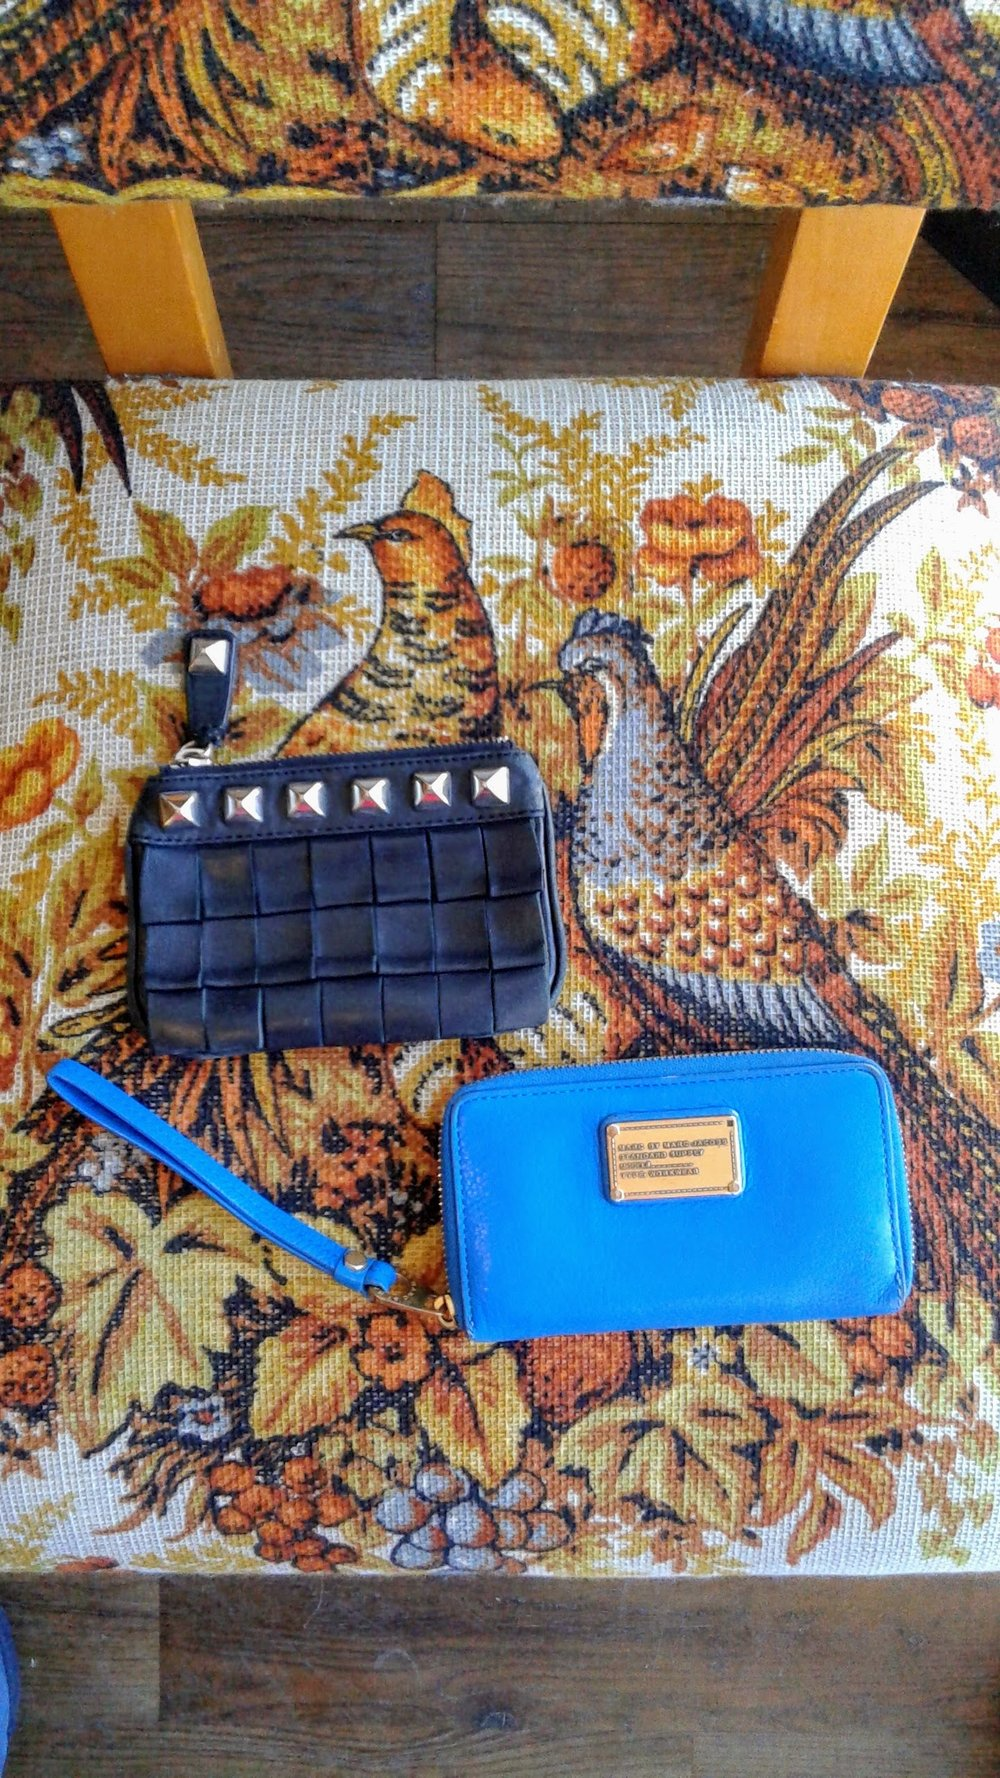 Betsy Johnson wallet, $22. Marc Jacobs walled, $36